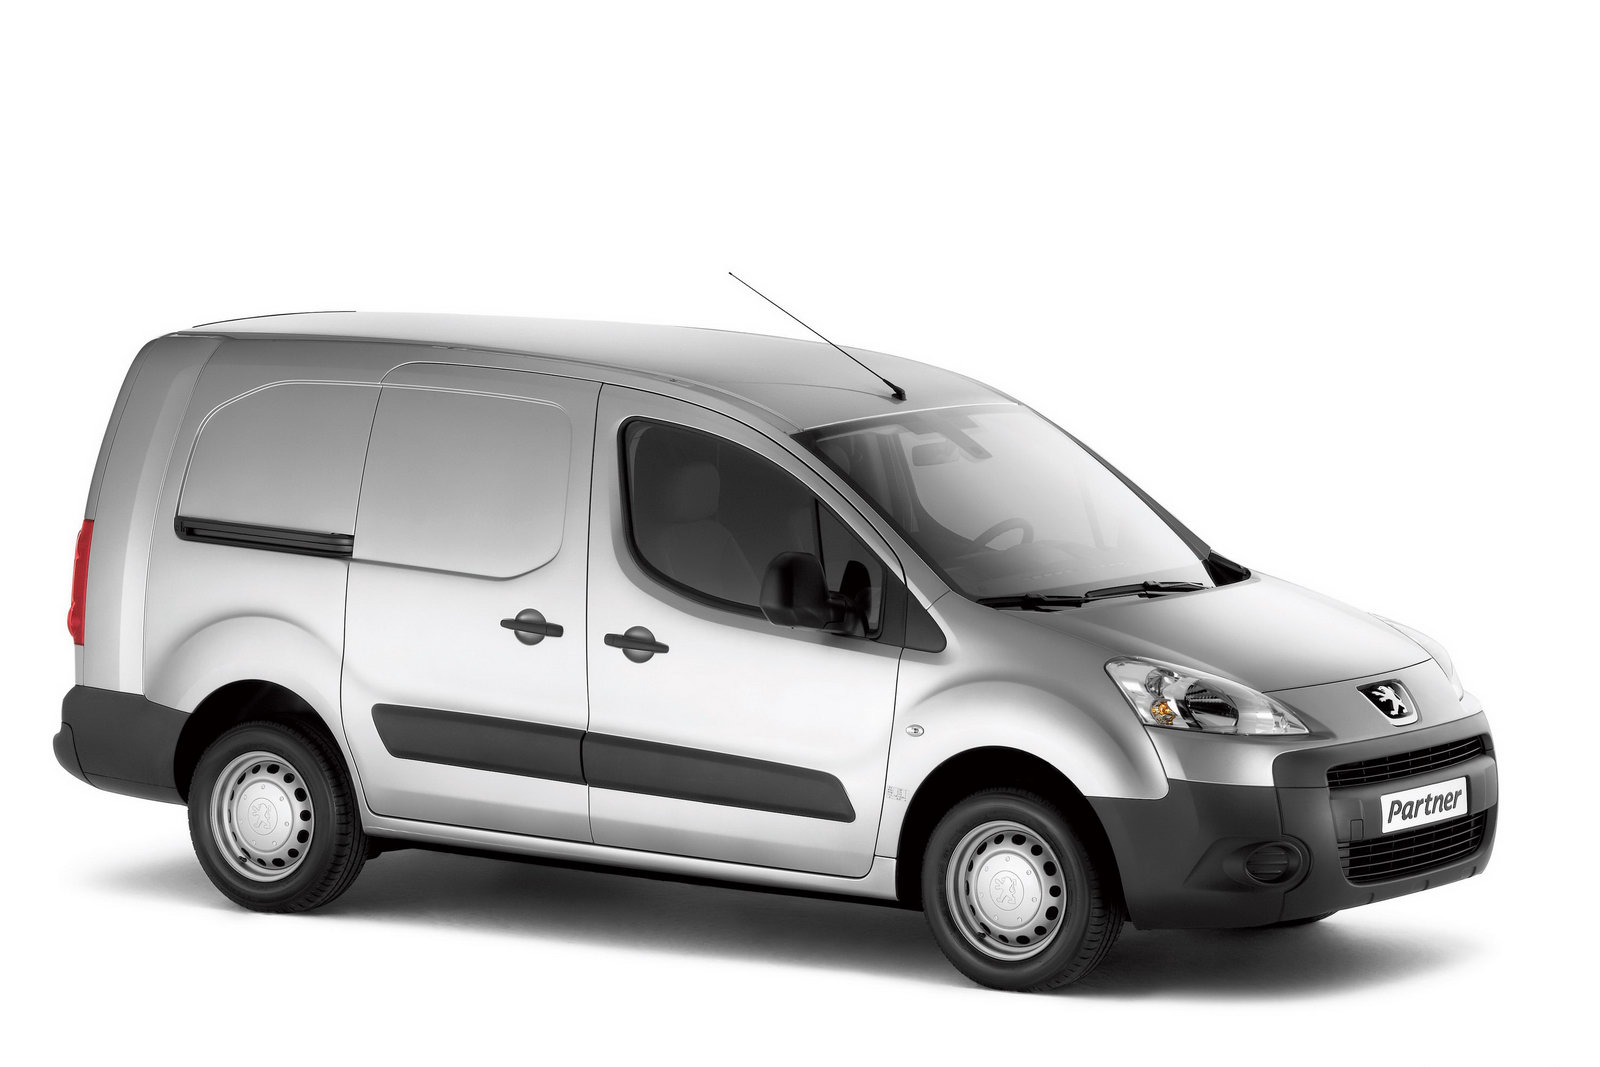 Peugeot's Partner crew Van is now available in the UK with a five seat bristol nz free image editor